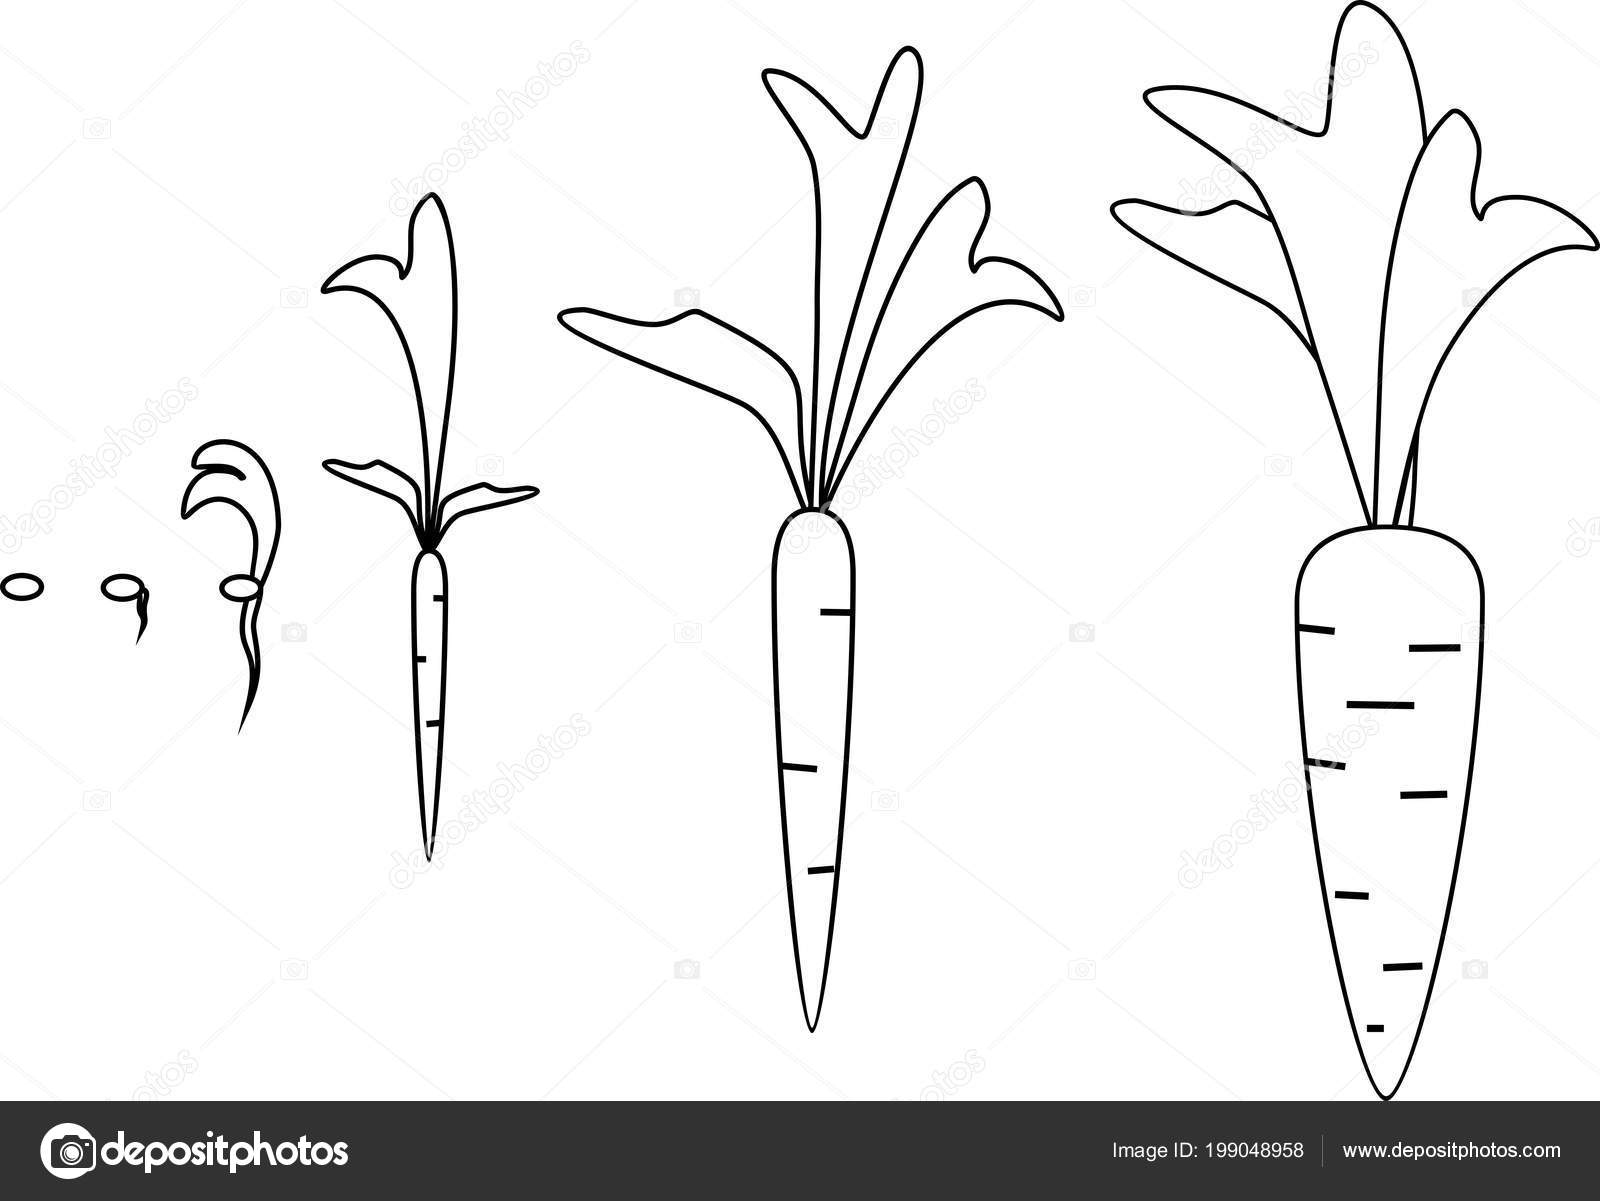 Carrot Growth Stages Coloring Pages — Stock Vector